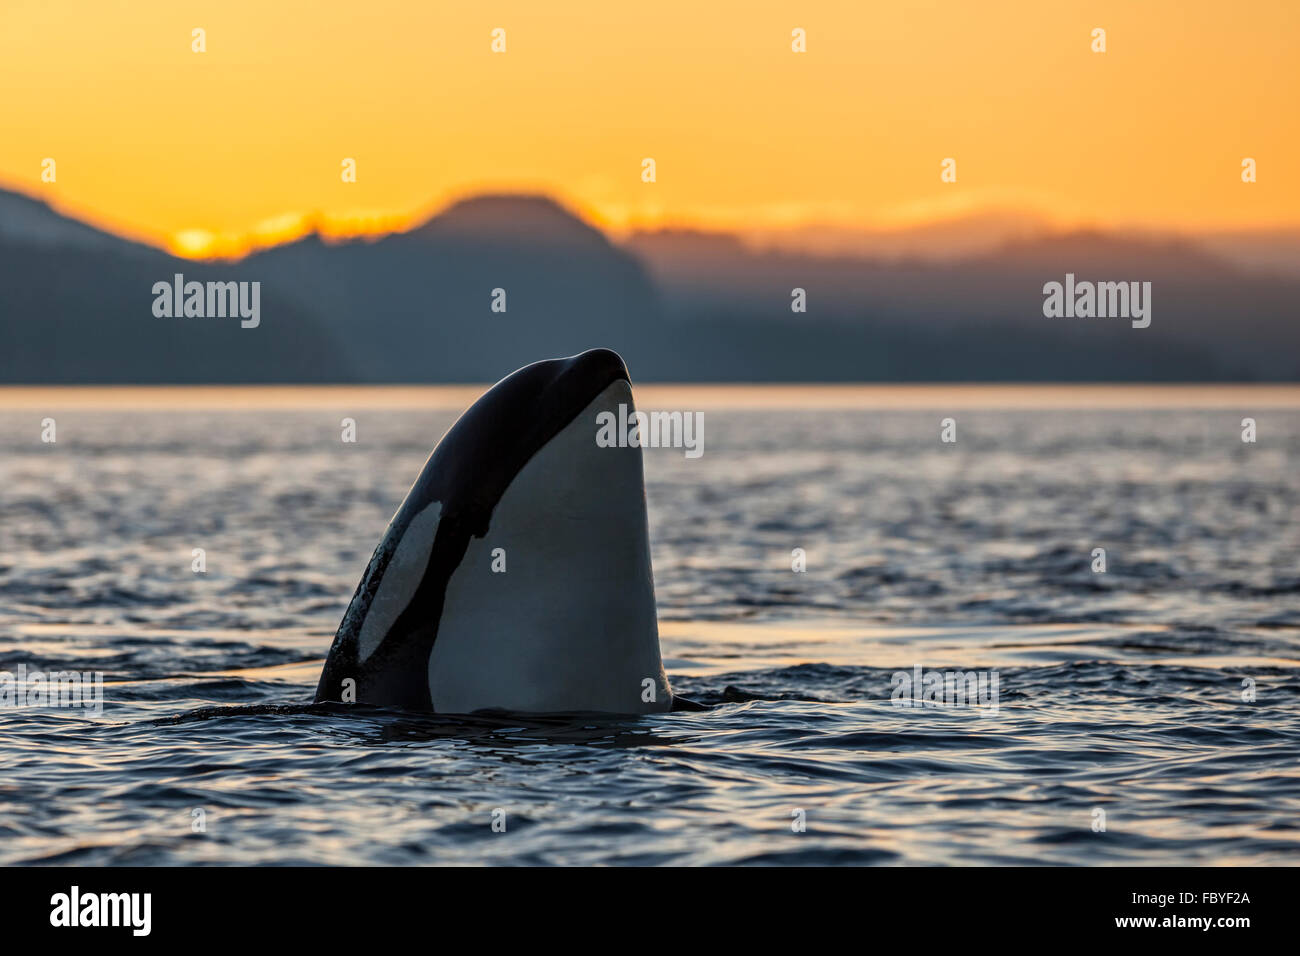 Resident Killer whale (Orcinus orca) spyhopping during sunset in Johnstone Strait, British Columbia, Canada. - Stock Image